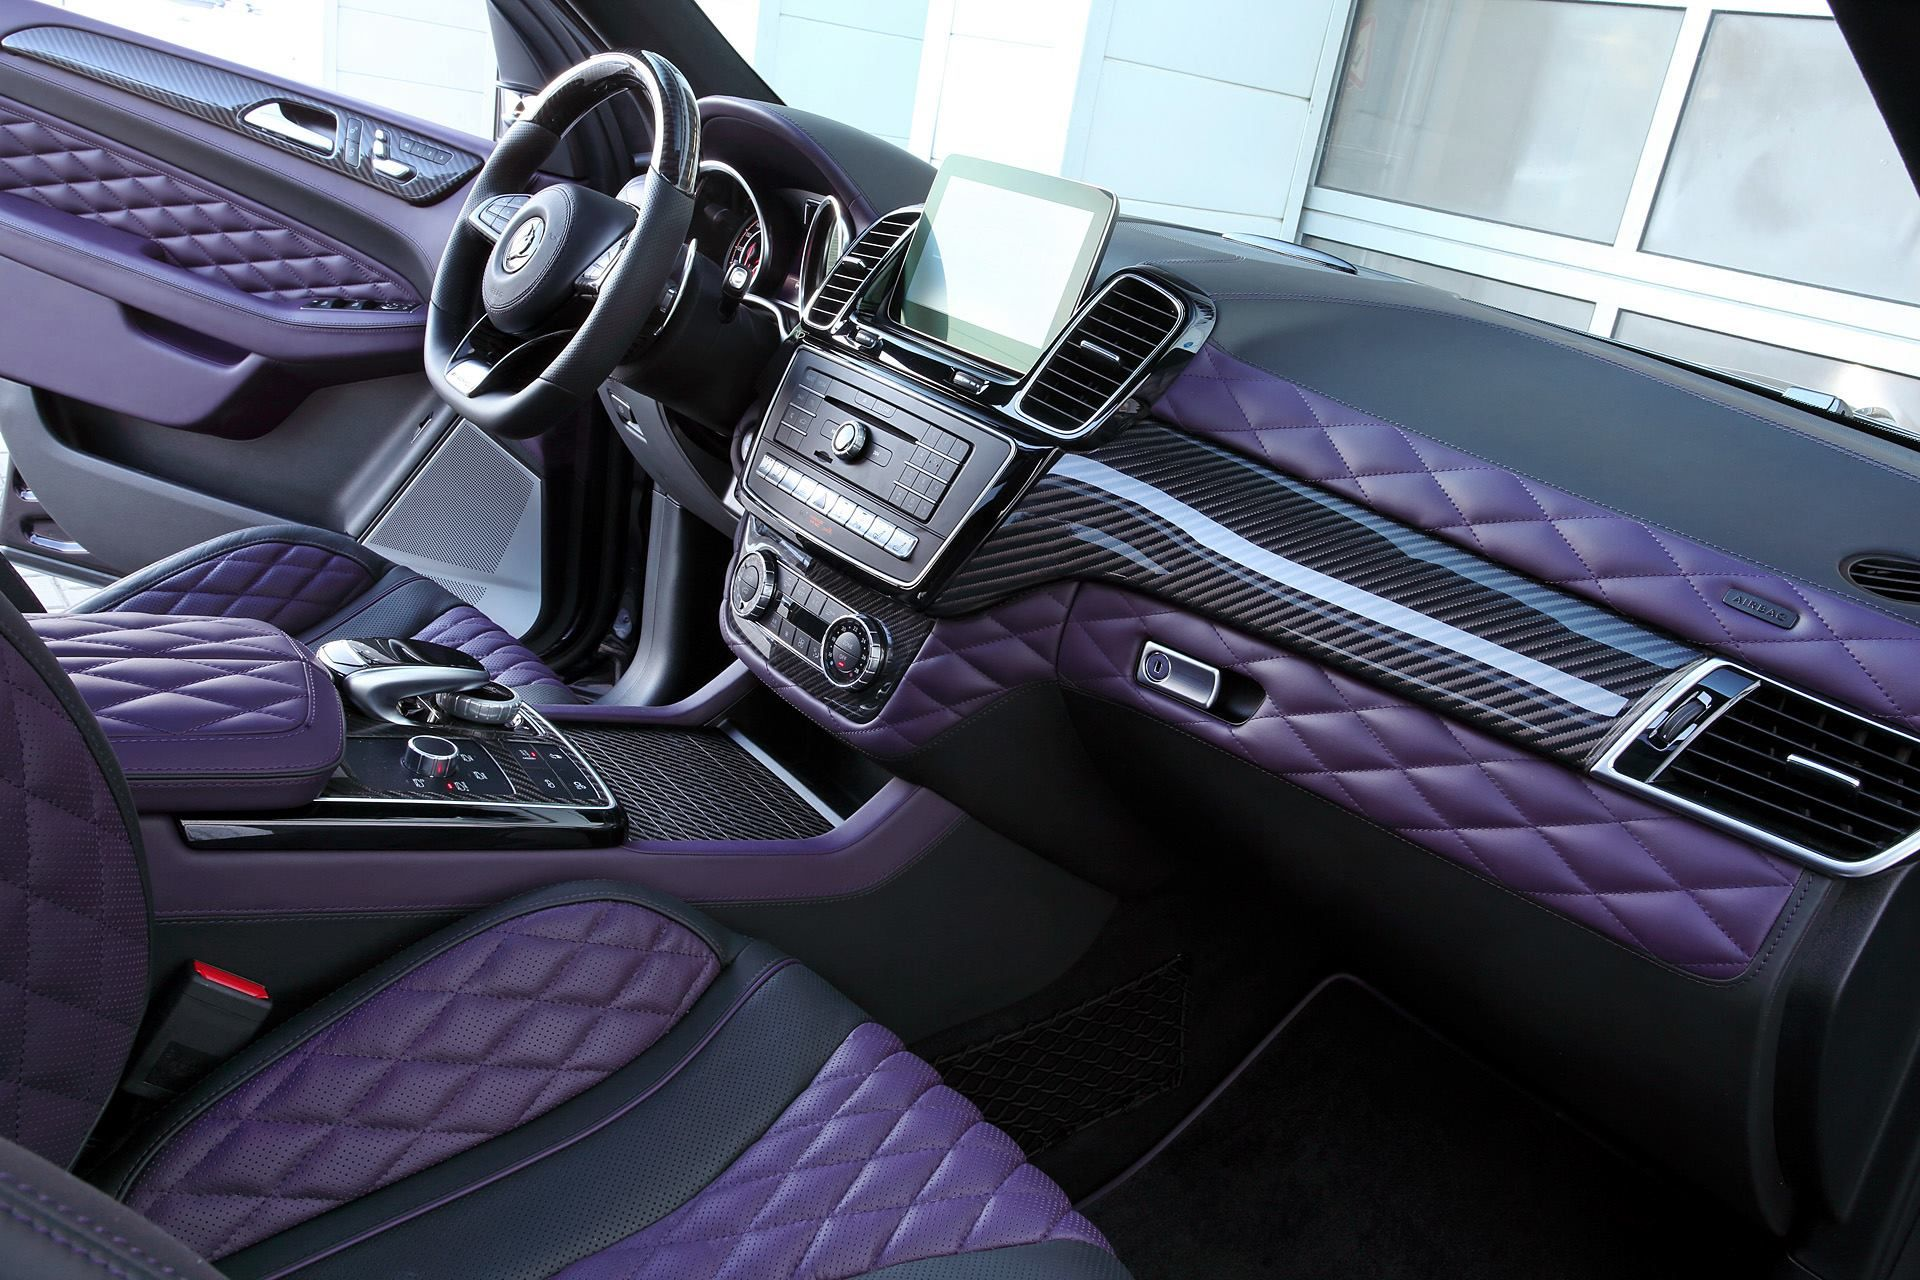 Carbon Mercedes AMG GLE 63 By Topcar Has Purple Leather